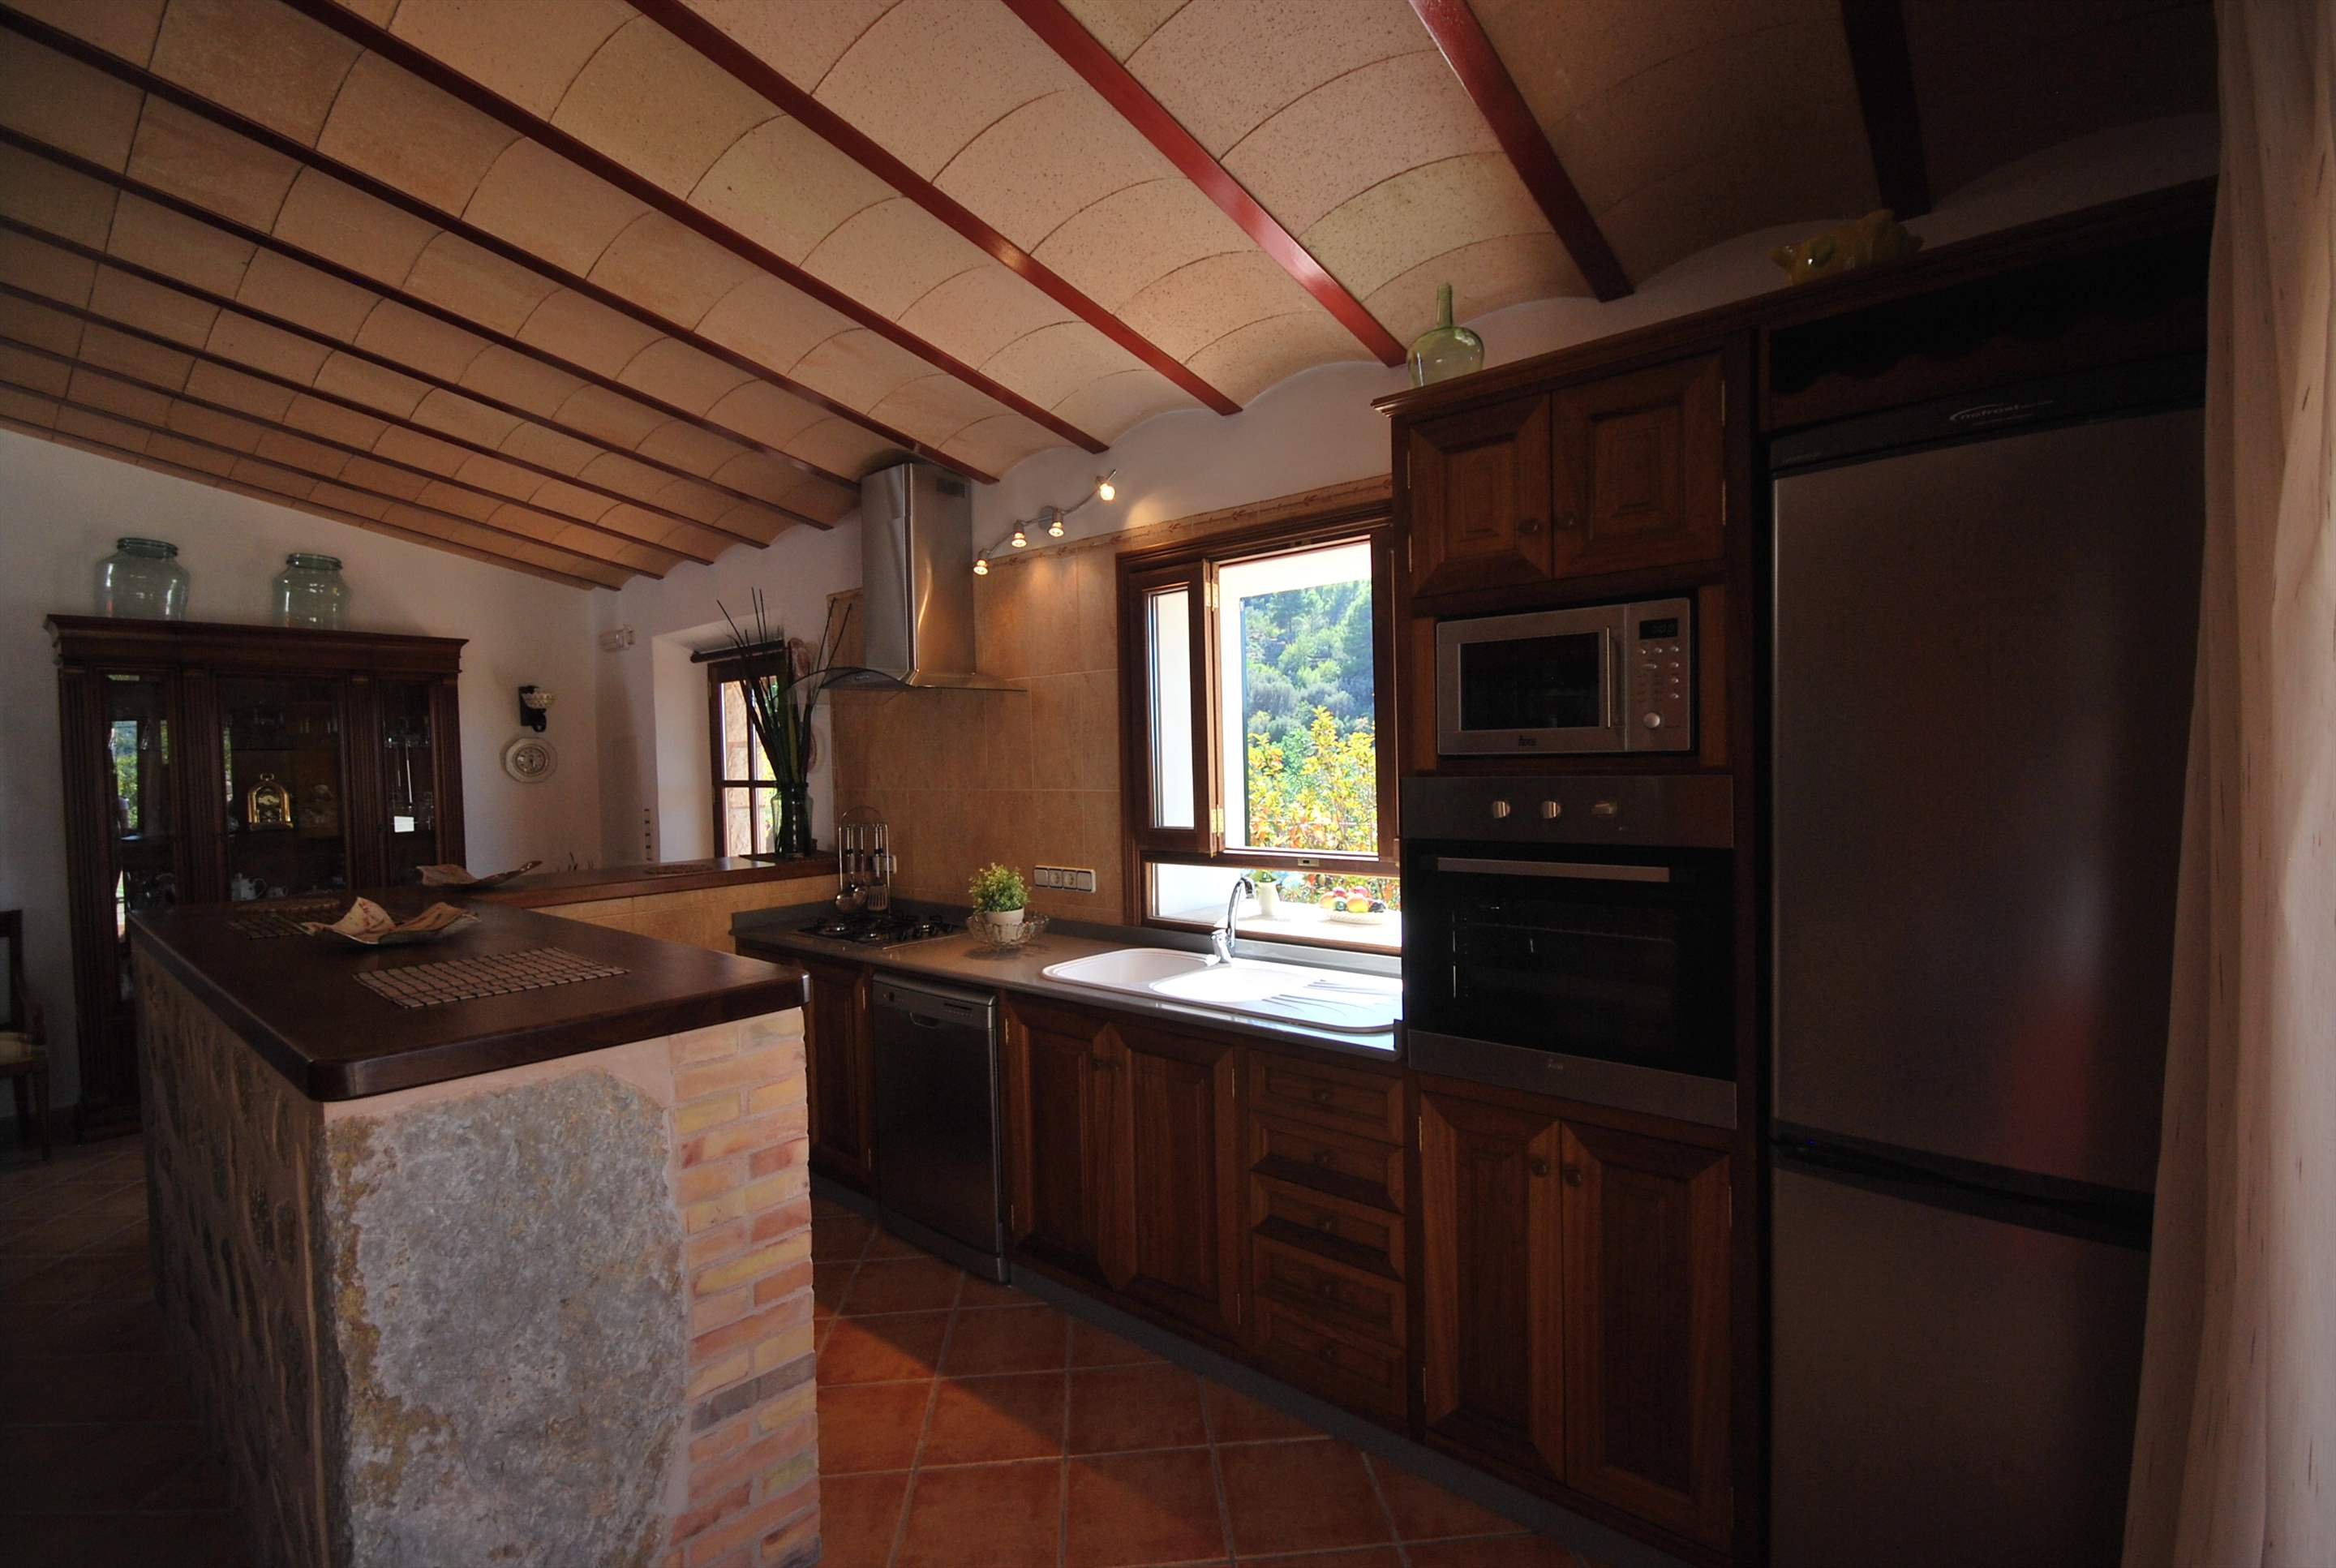 Casa Tres Cruces - SO1797, 3 bedroom villa in Soller & Deia, Majorca Photo #4